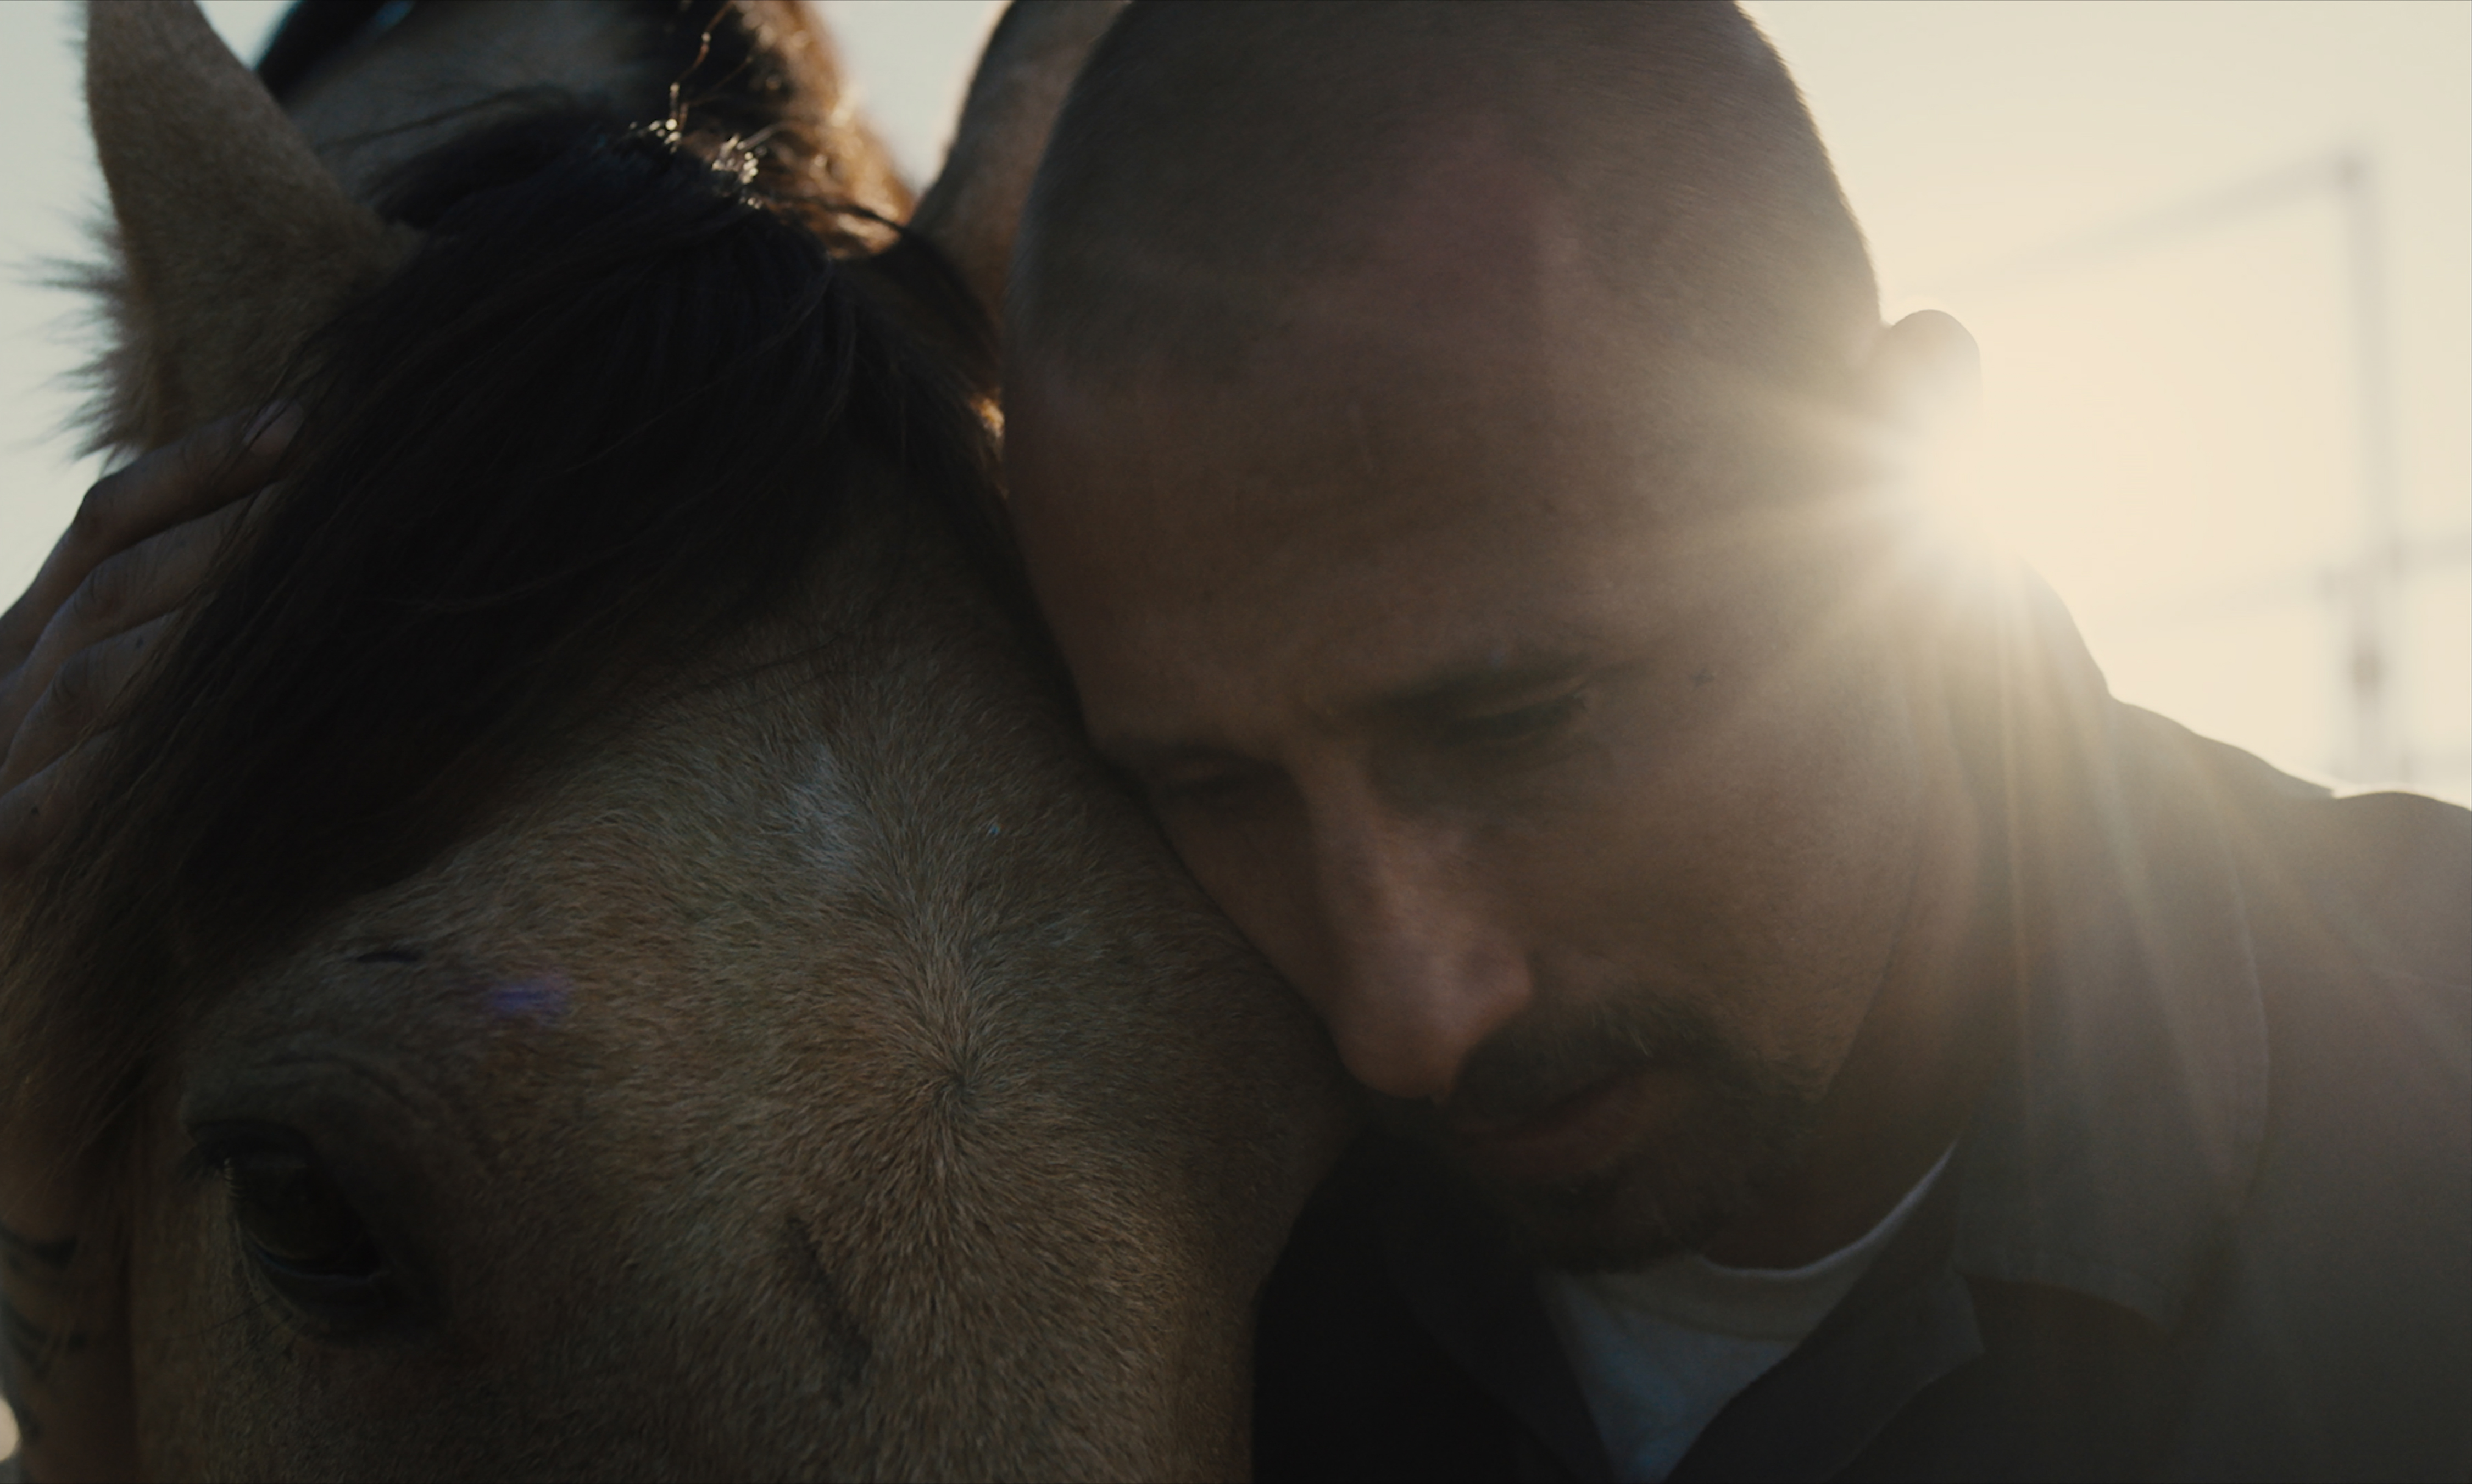 Matthias Schoenaerts appears in The Mustang by Laure de Clermont-Tonnerre, an official selection of the Premieres program at the 2019 Sundance Film Festival.